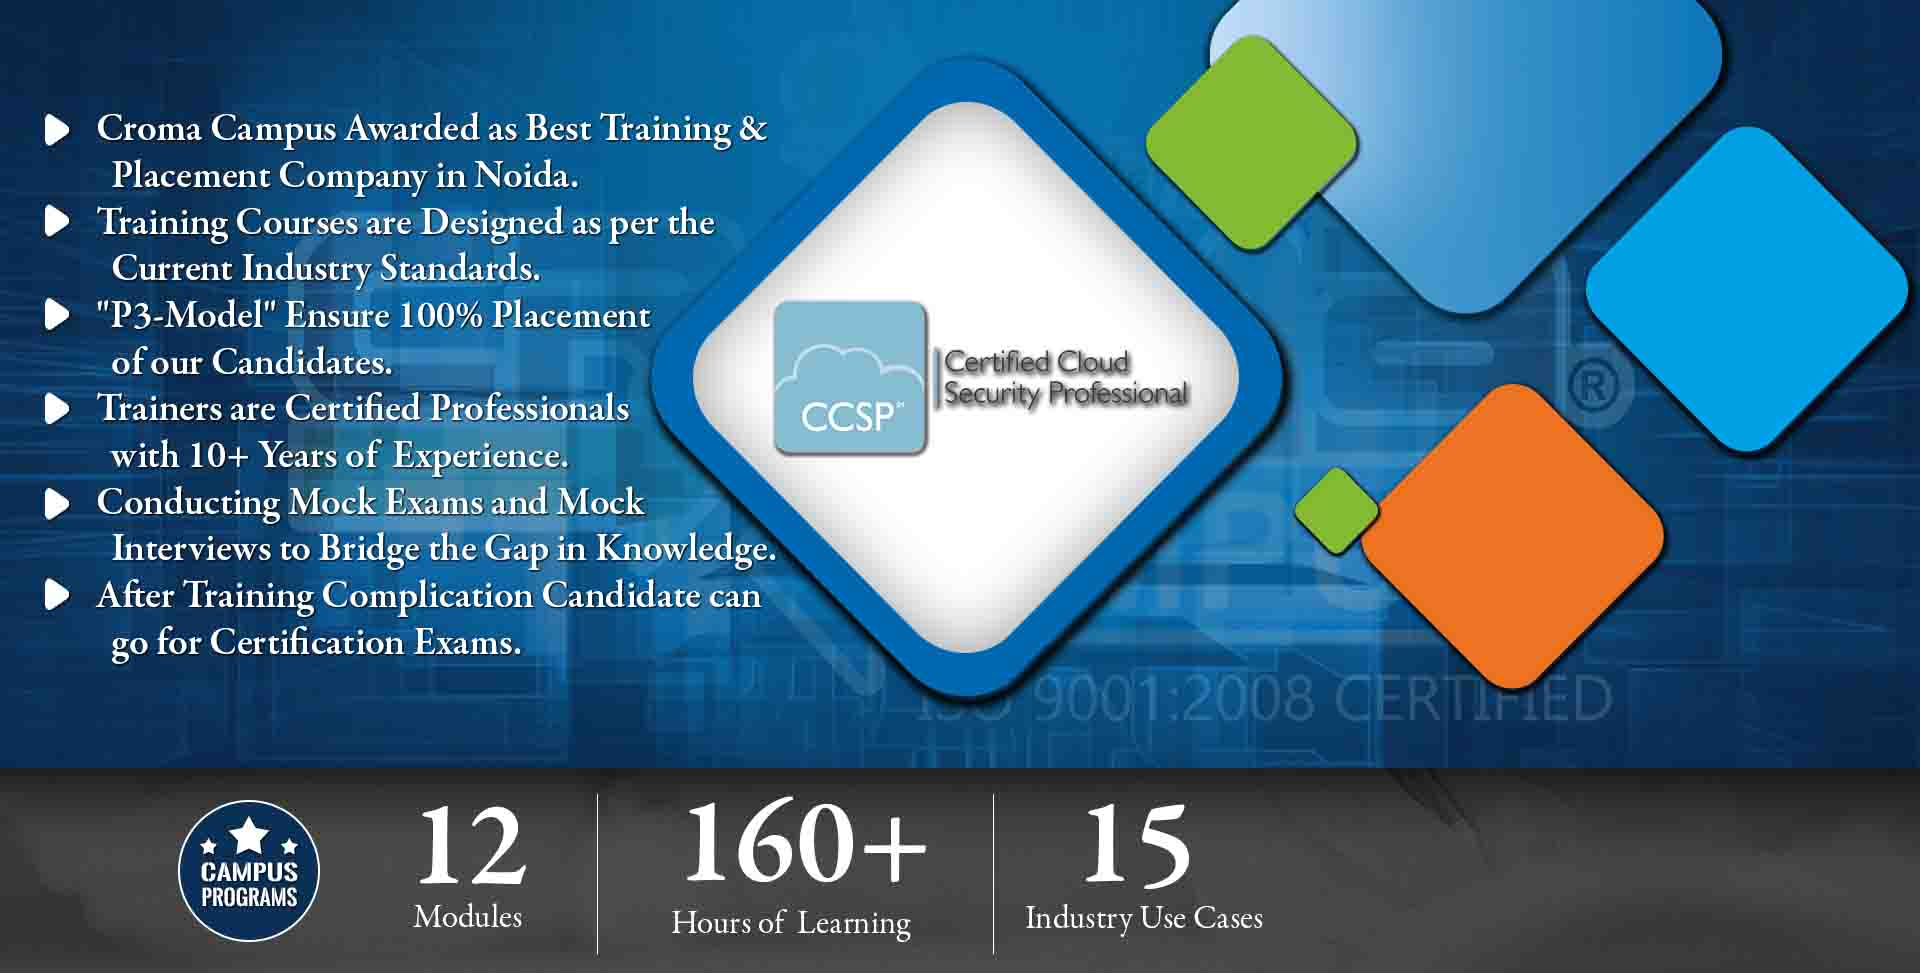 CCNP Training in Noida- Croma Campus